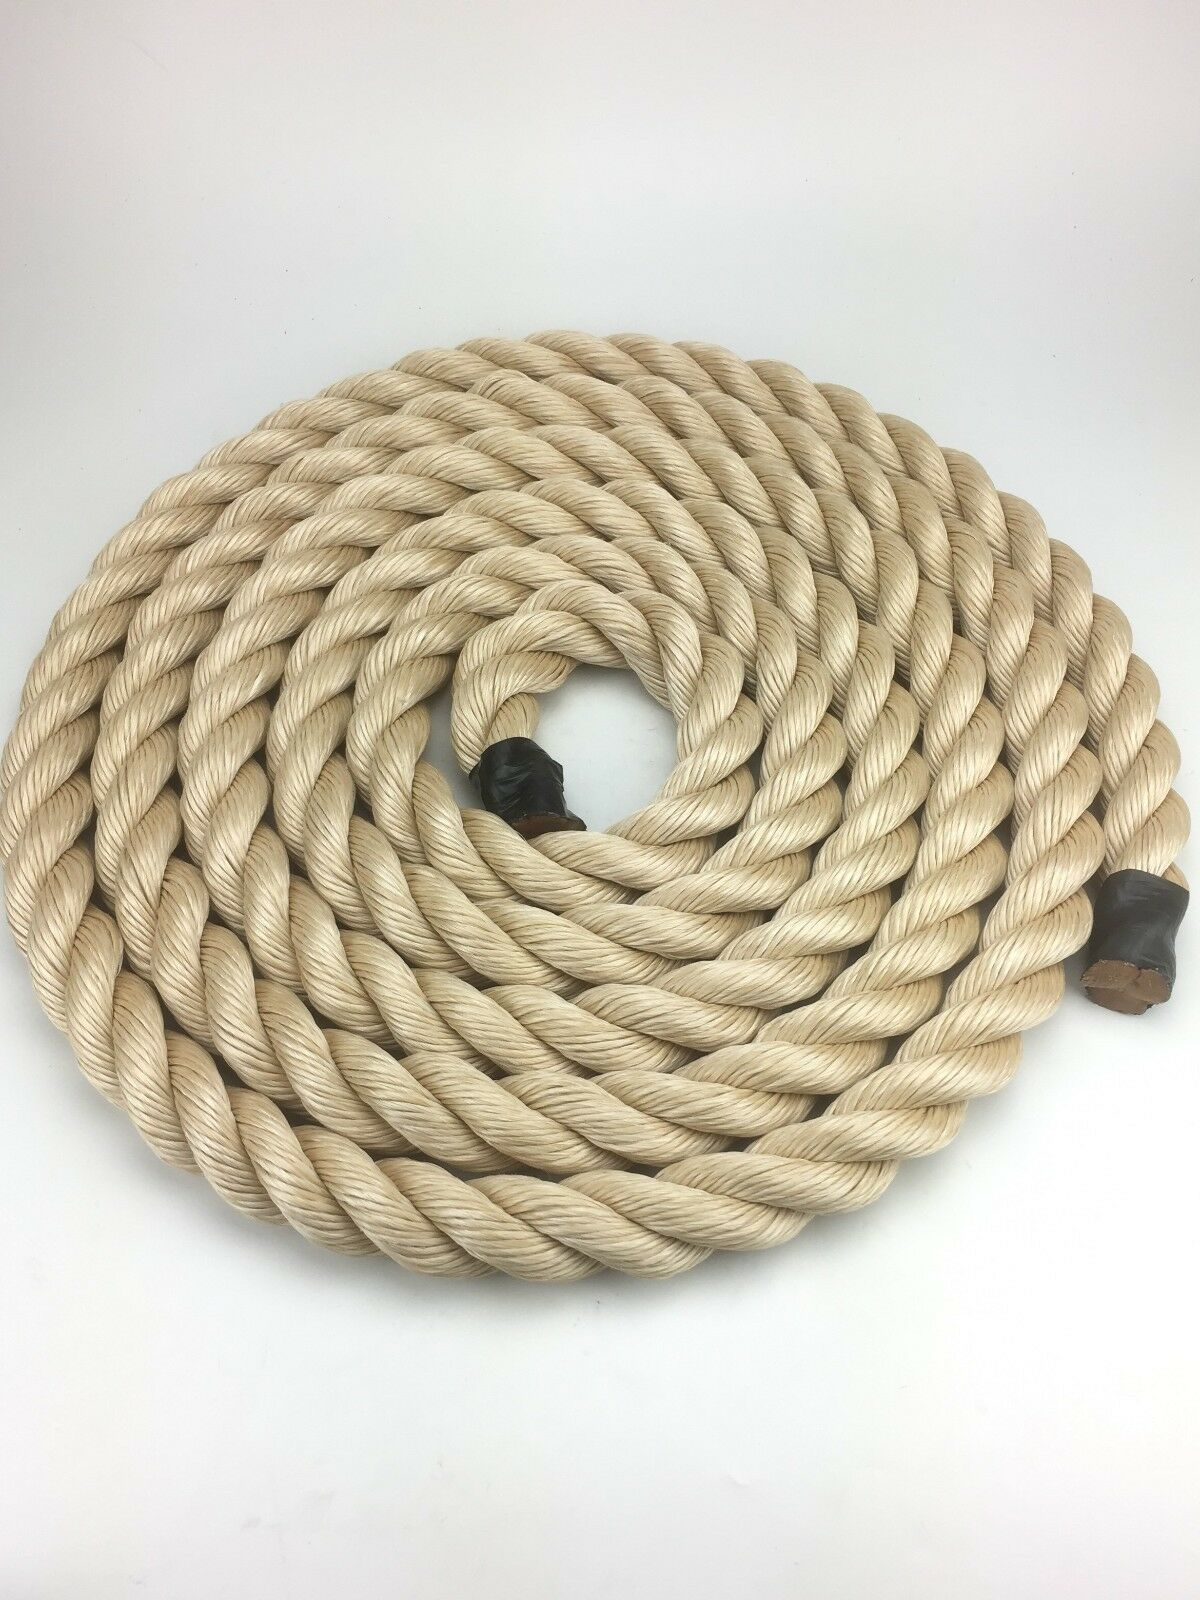 36mm Synthetic Sisal x 50 Metres,Sisal Rope,Sisal For Decking,Garden & Boating